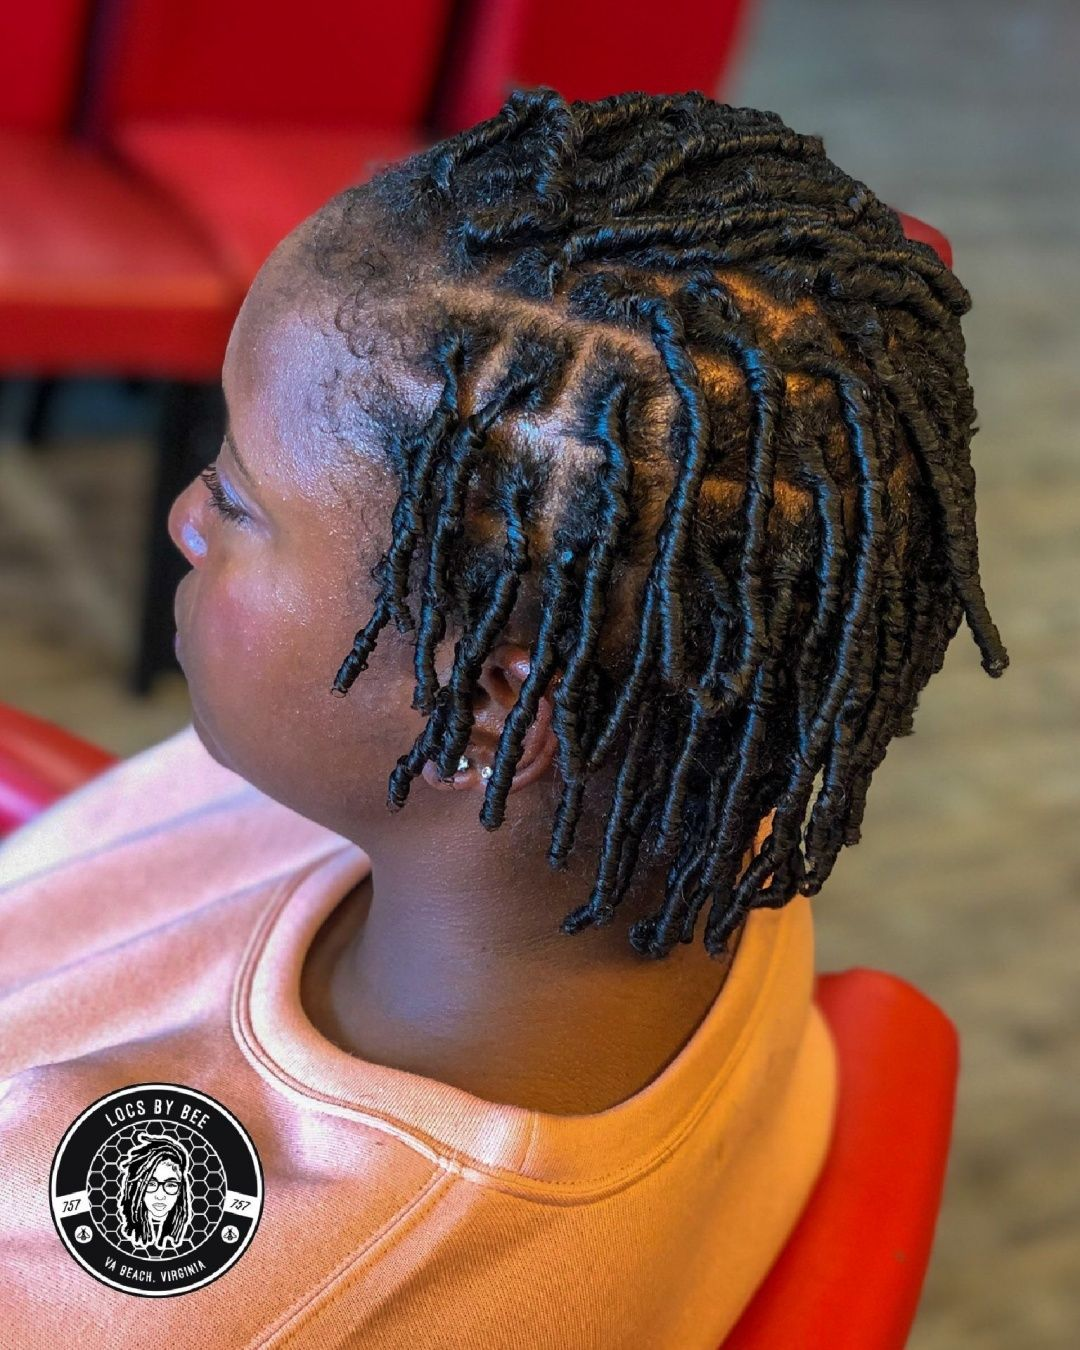 Hair Density And Part Size Denote What Size Loc You Get But If You Just Let Your Hair Go Without Regul Natural Hair Styles Locs Hairstyles Retwist Locs Style